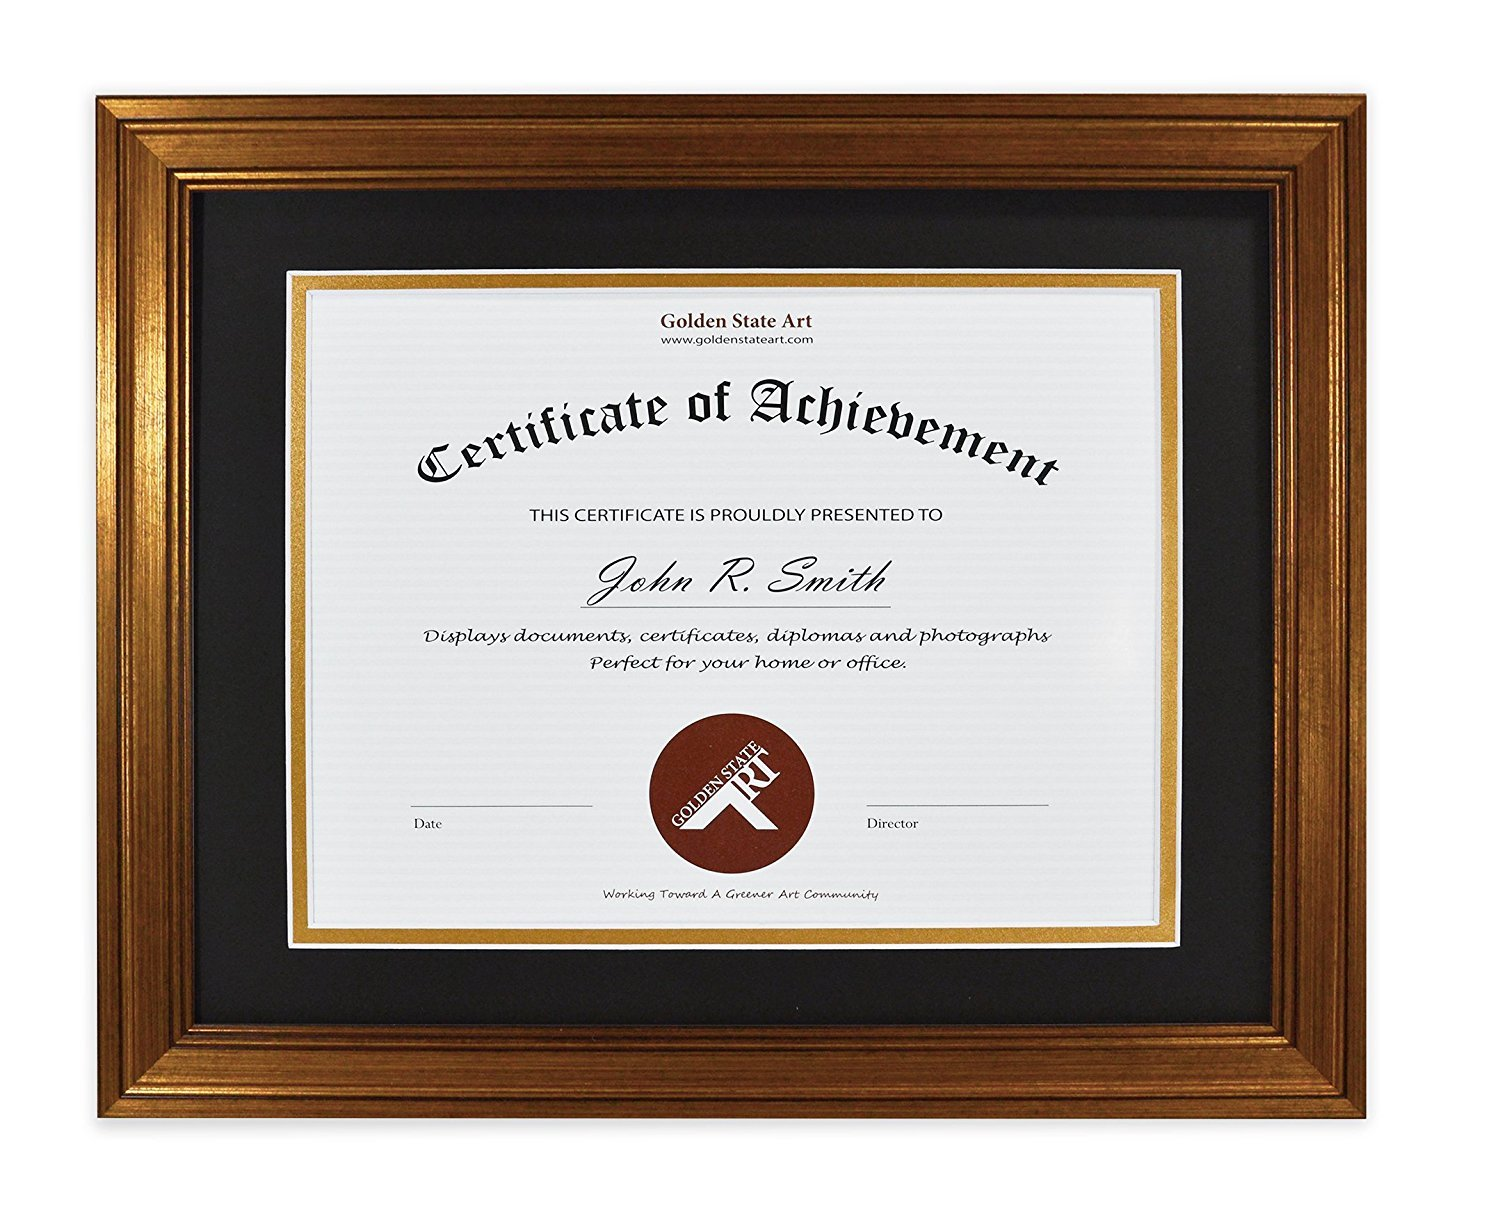 Golden State Art 11x14 Frame for 8.5x11 Diploma/Certificate, Dark Gold Color. Includes Black Over Gold Double Mat and Real Glass